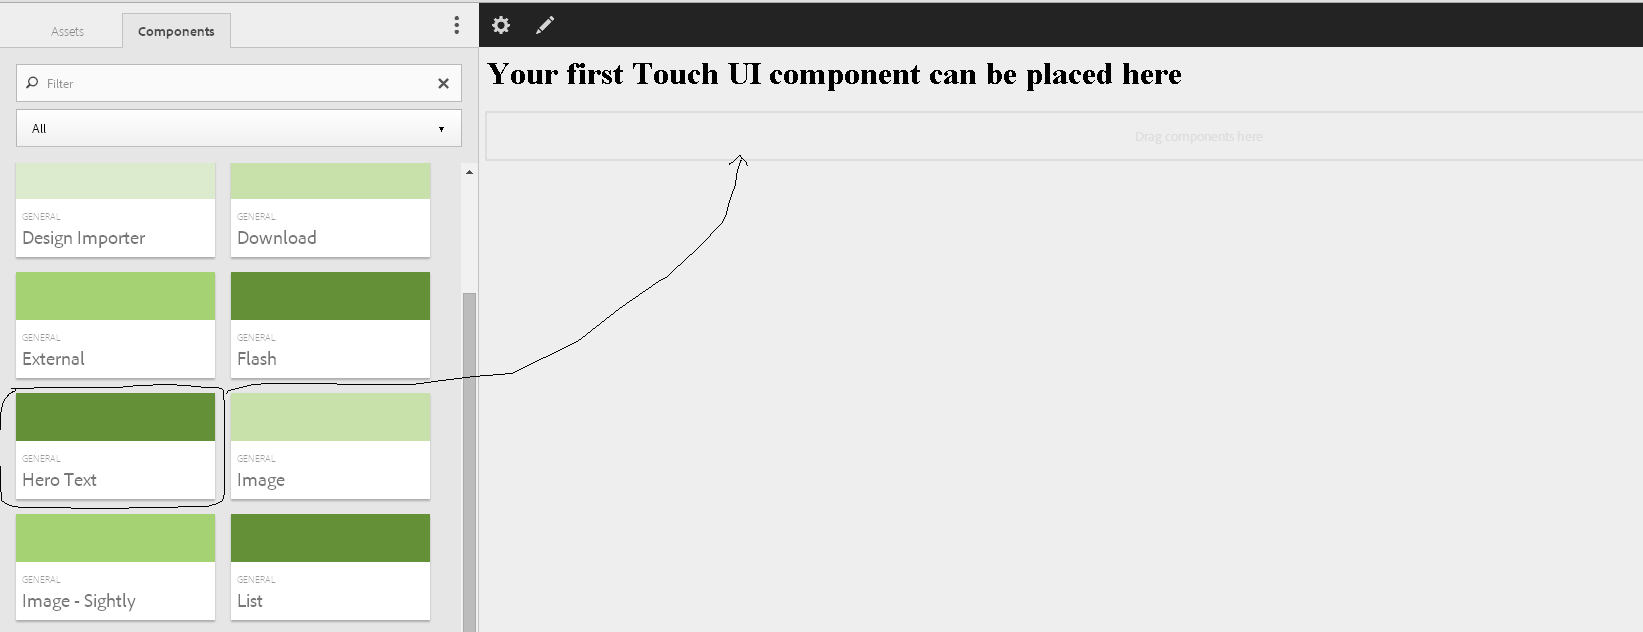 Creating Your First Adobe Experience Manager Touch Ui Component All Electronic Illustration On This Page And Following Pages You Can Drag The From Side Rail Onto An Aem As Shown In